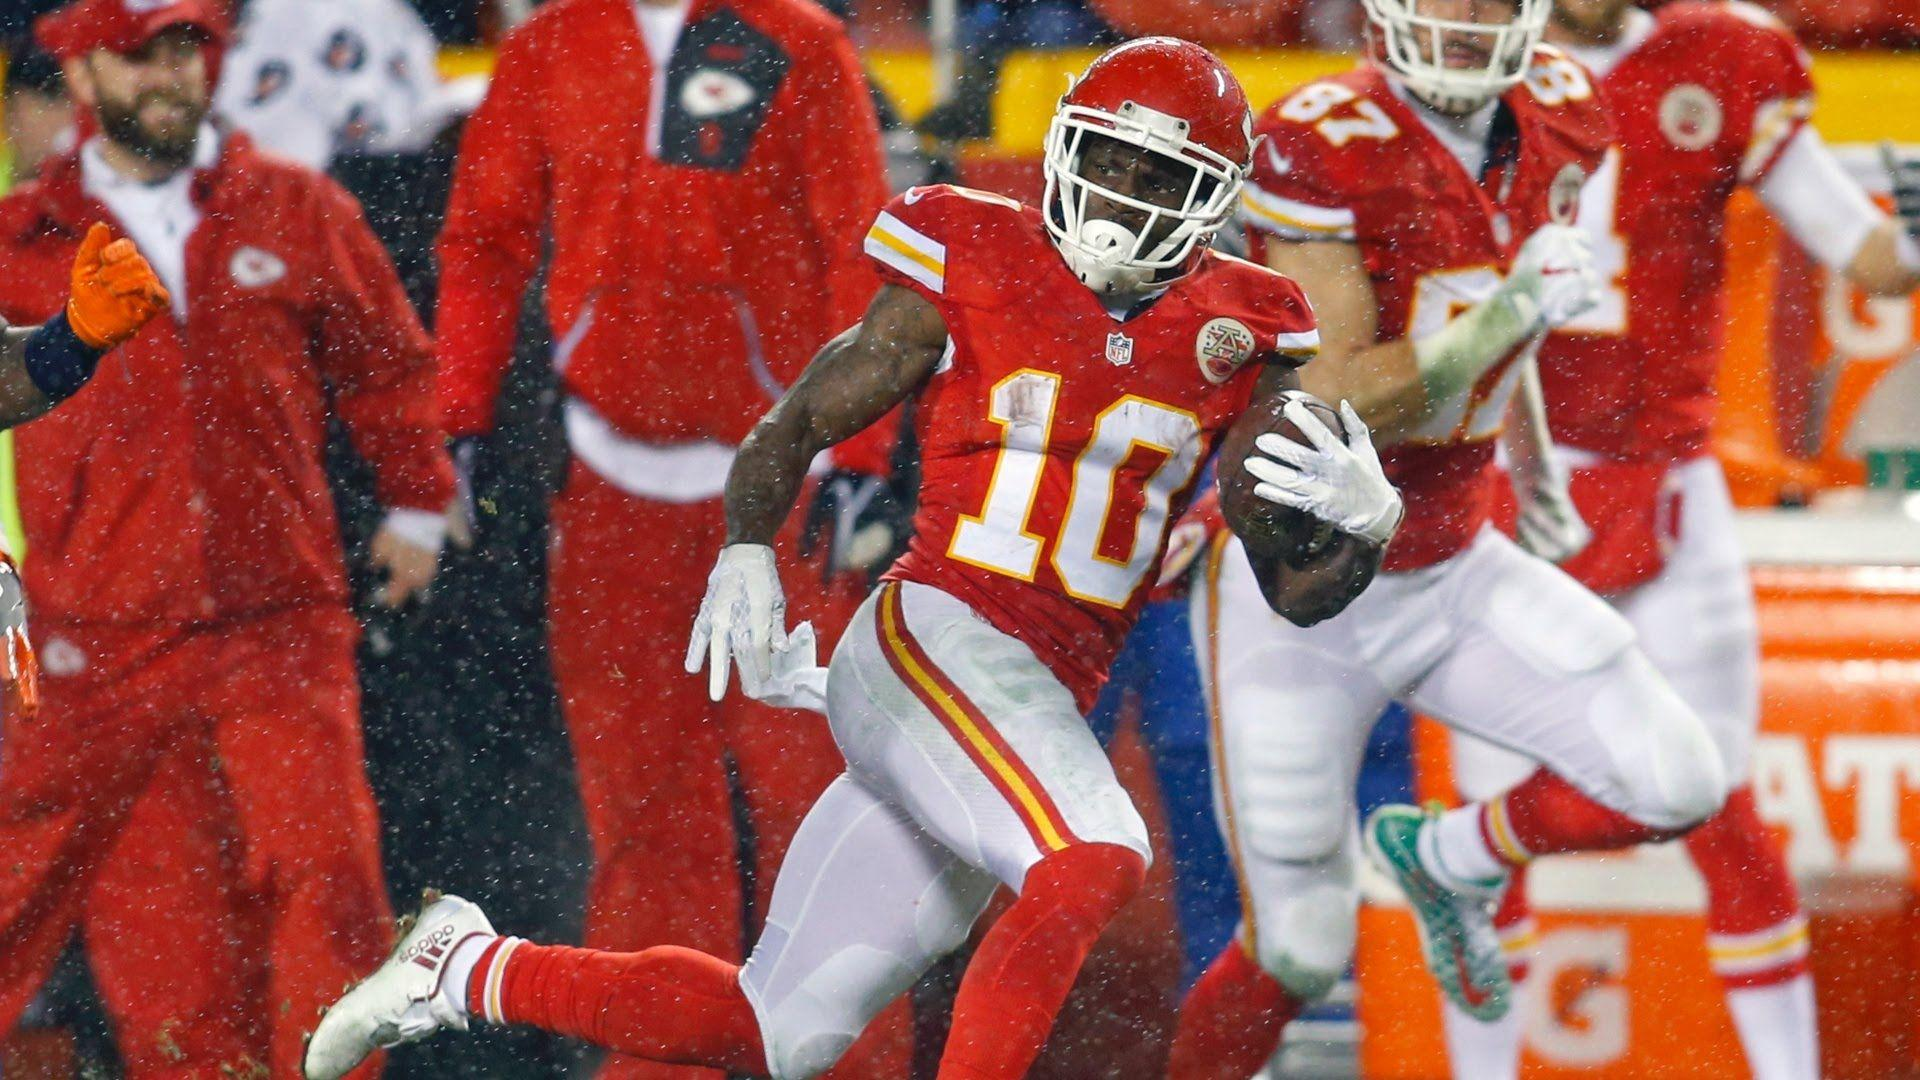 TodaySports] Tyreek Hill Lifts the Chiefs